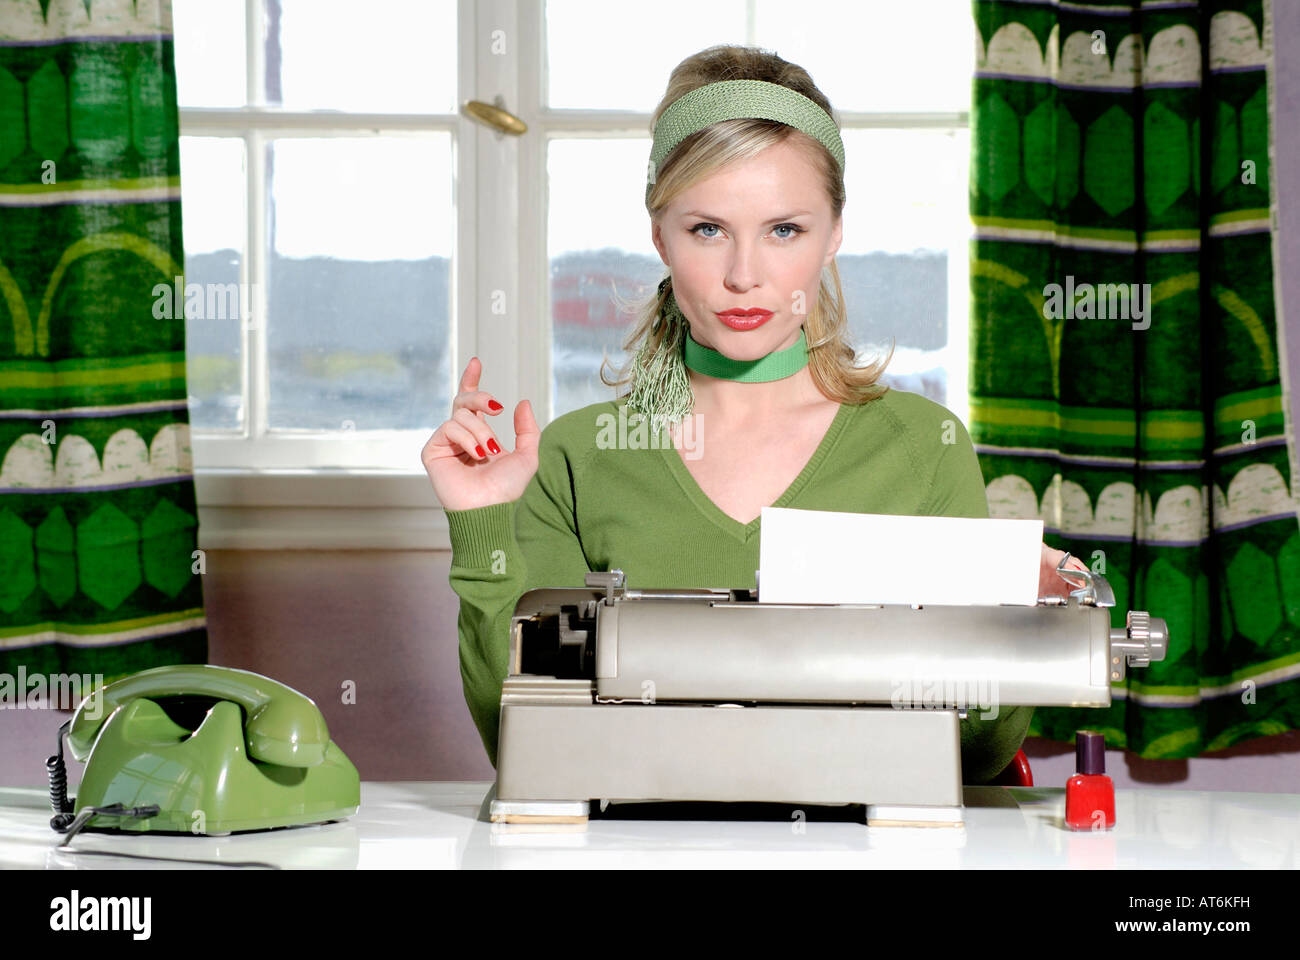 Young woman sitting at desk, close-up - Stock Image